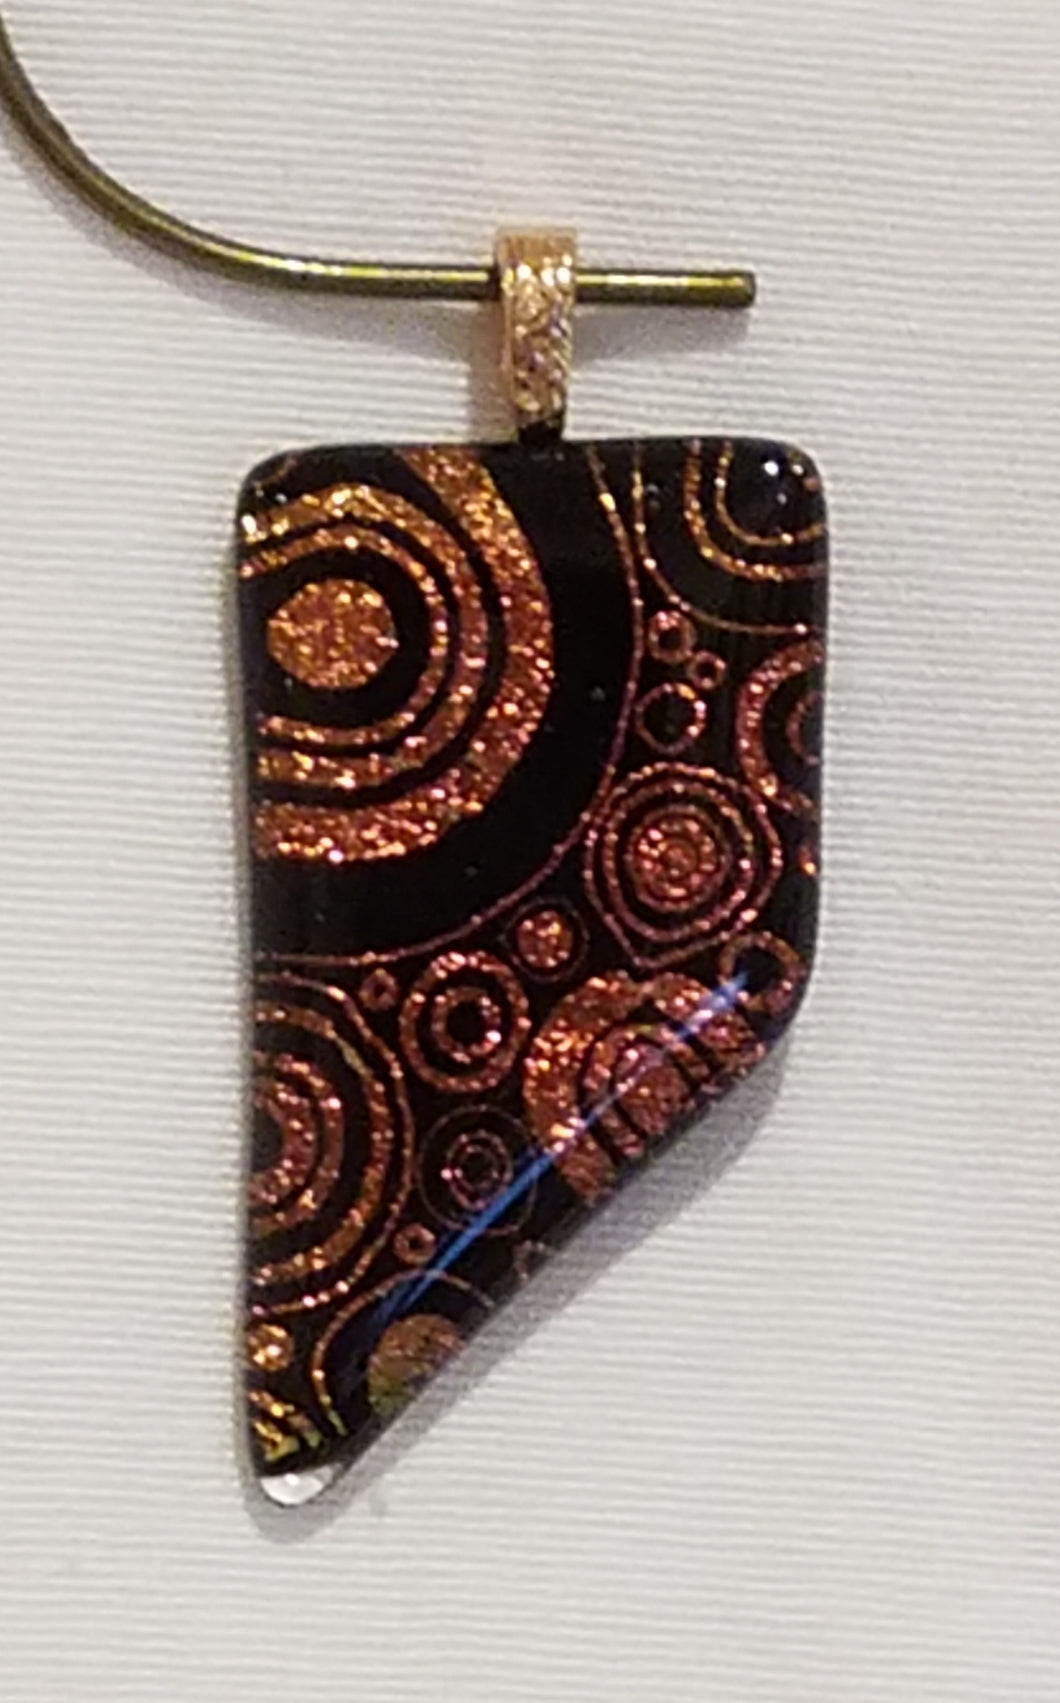 Capped Red/Gold Shimmer Rings Pointed Etched Dichroic Fused Glass Pendant